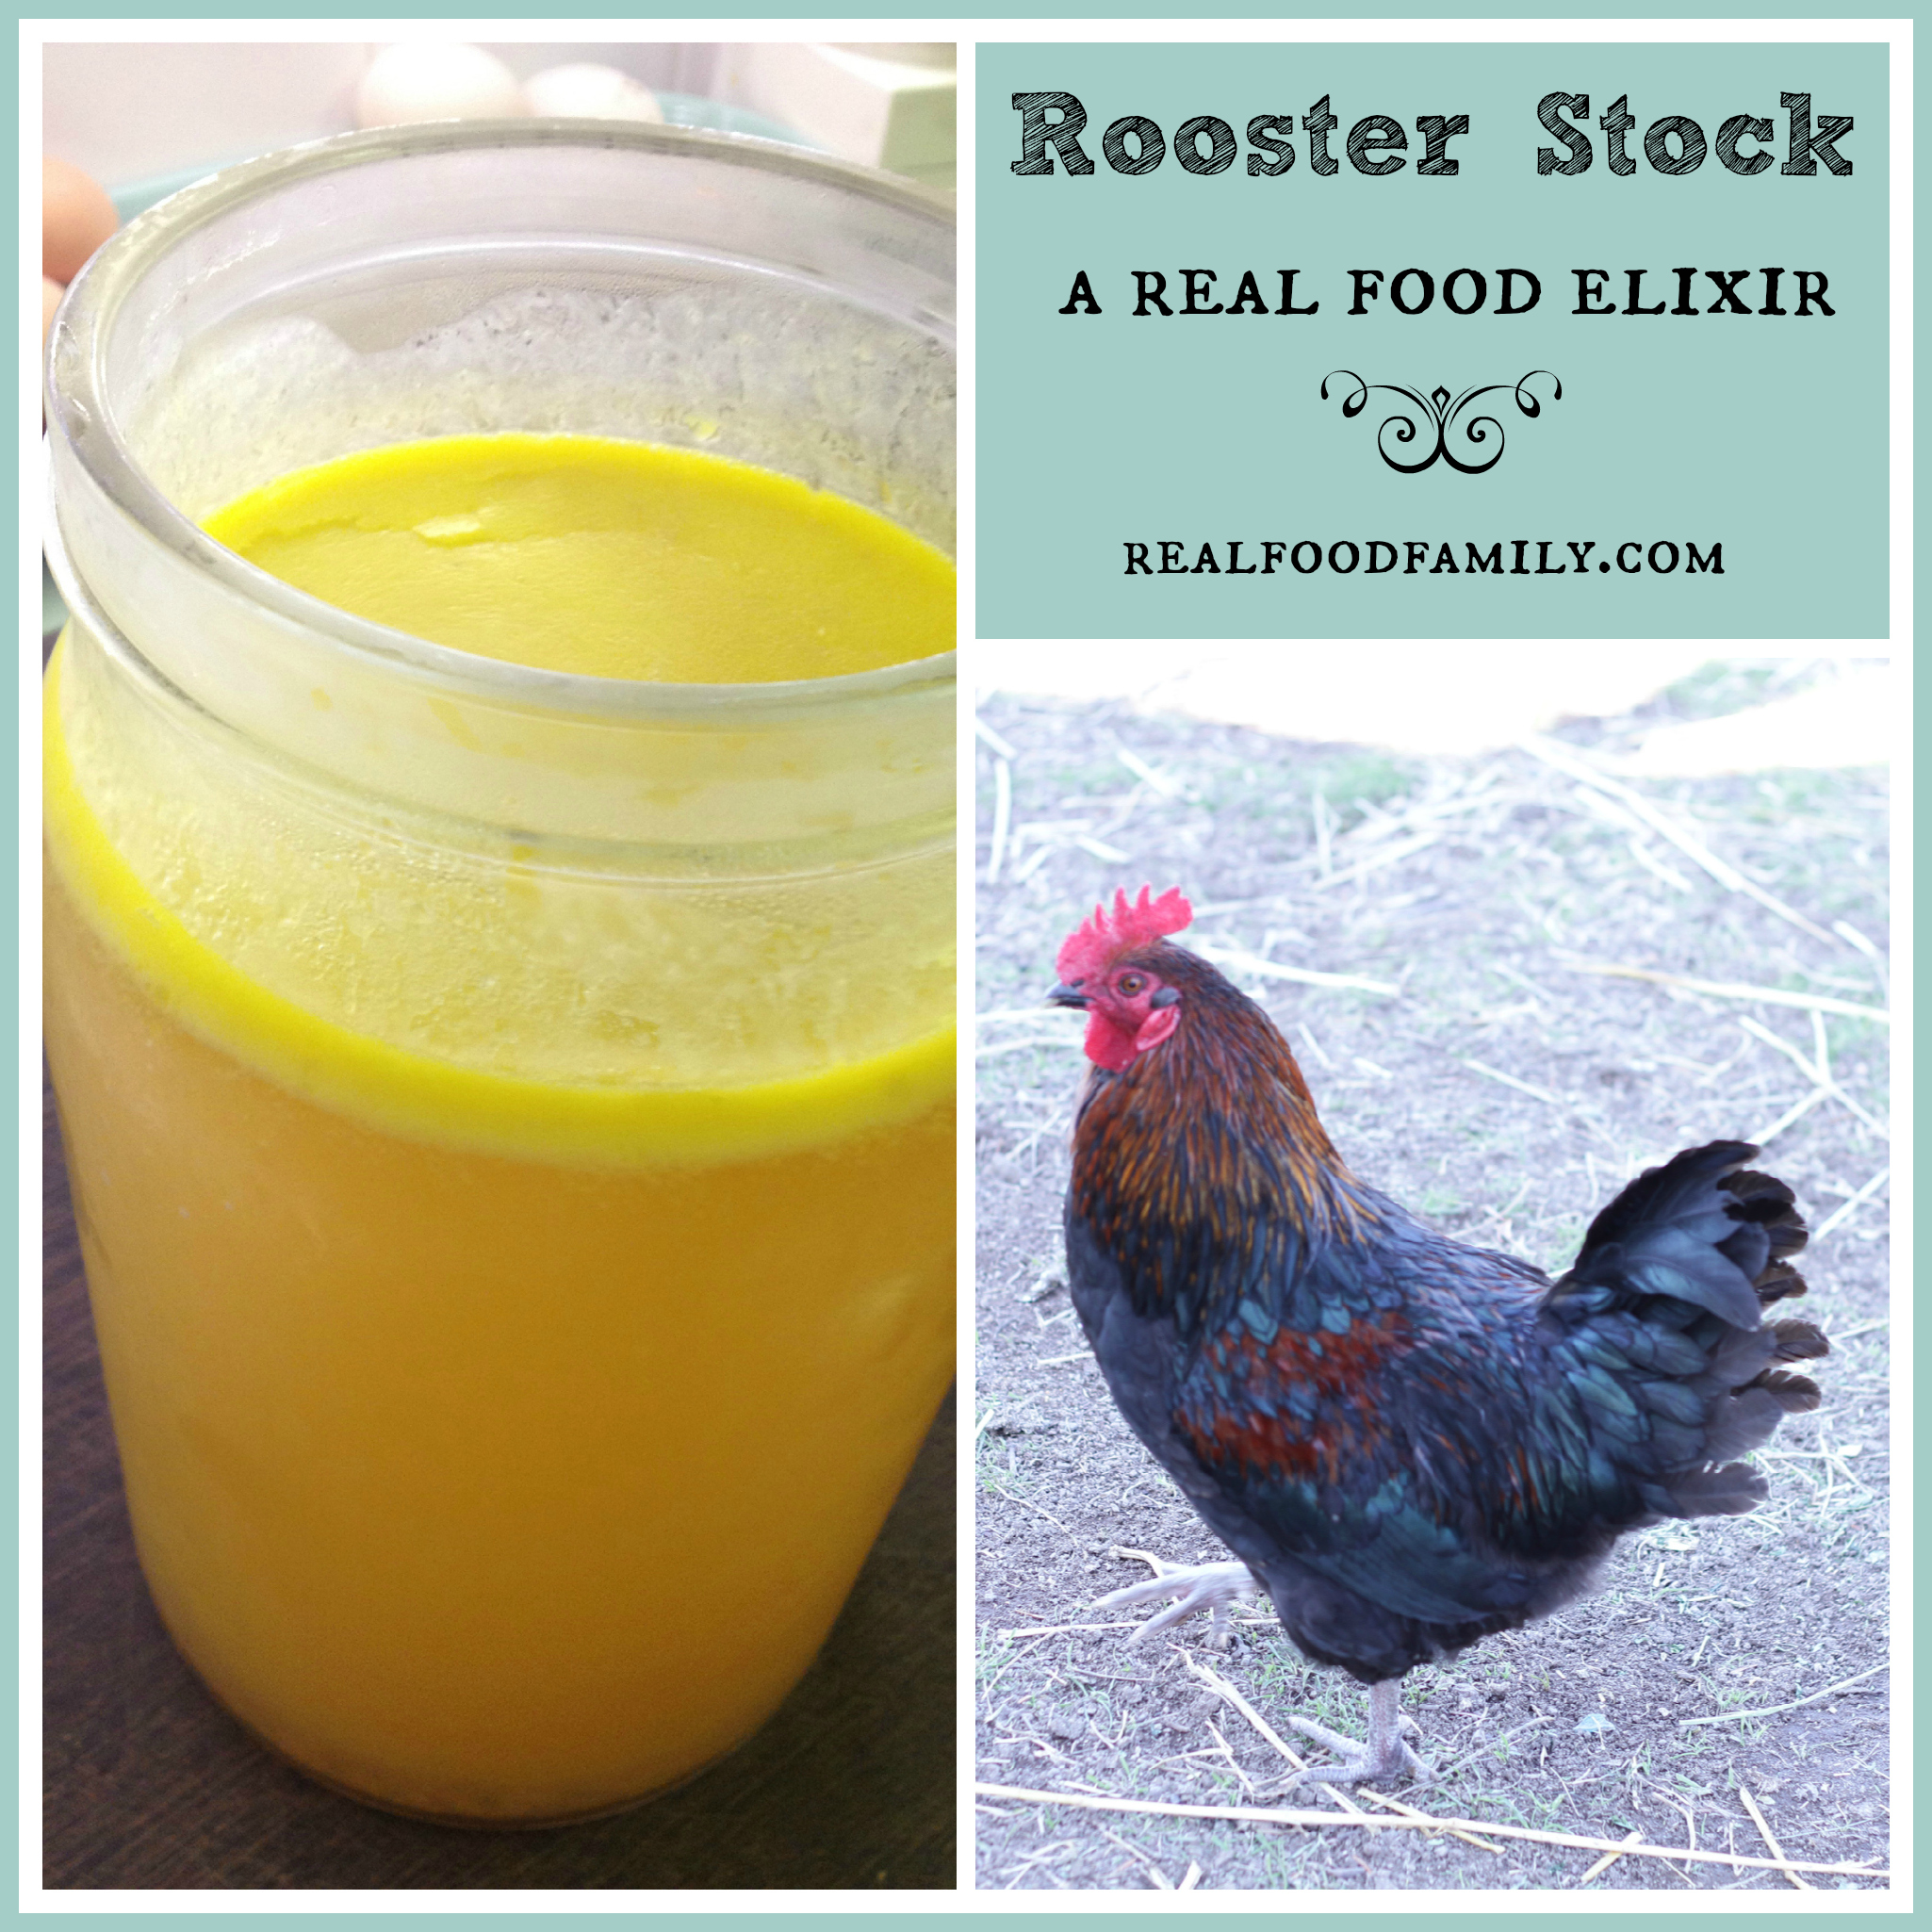 Rooster Stock…A Real Food Elixir